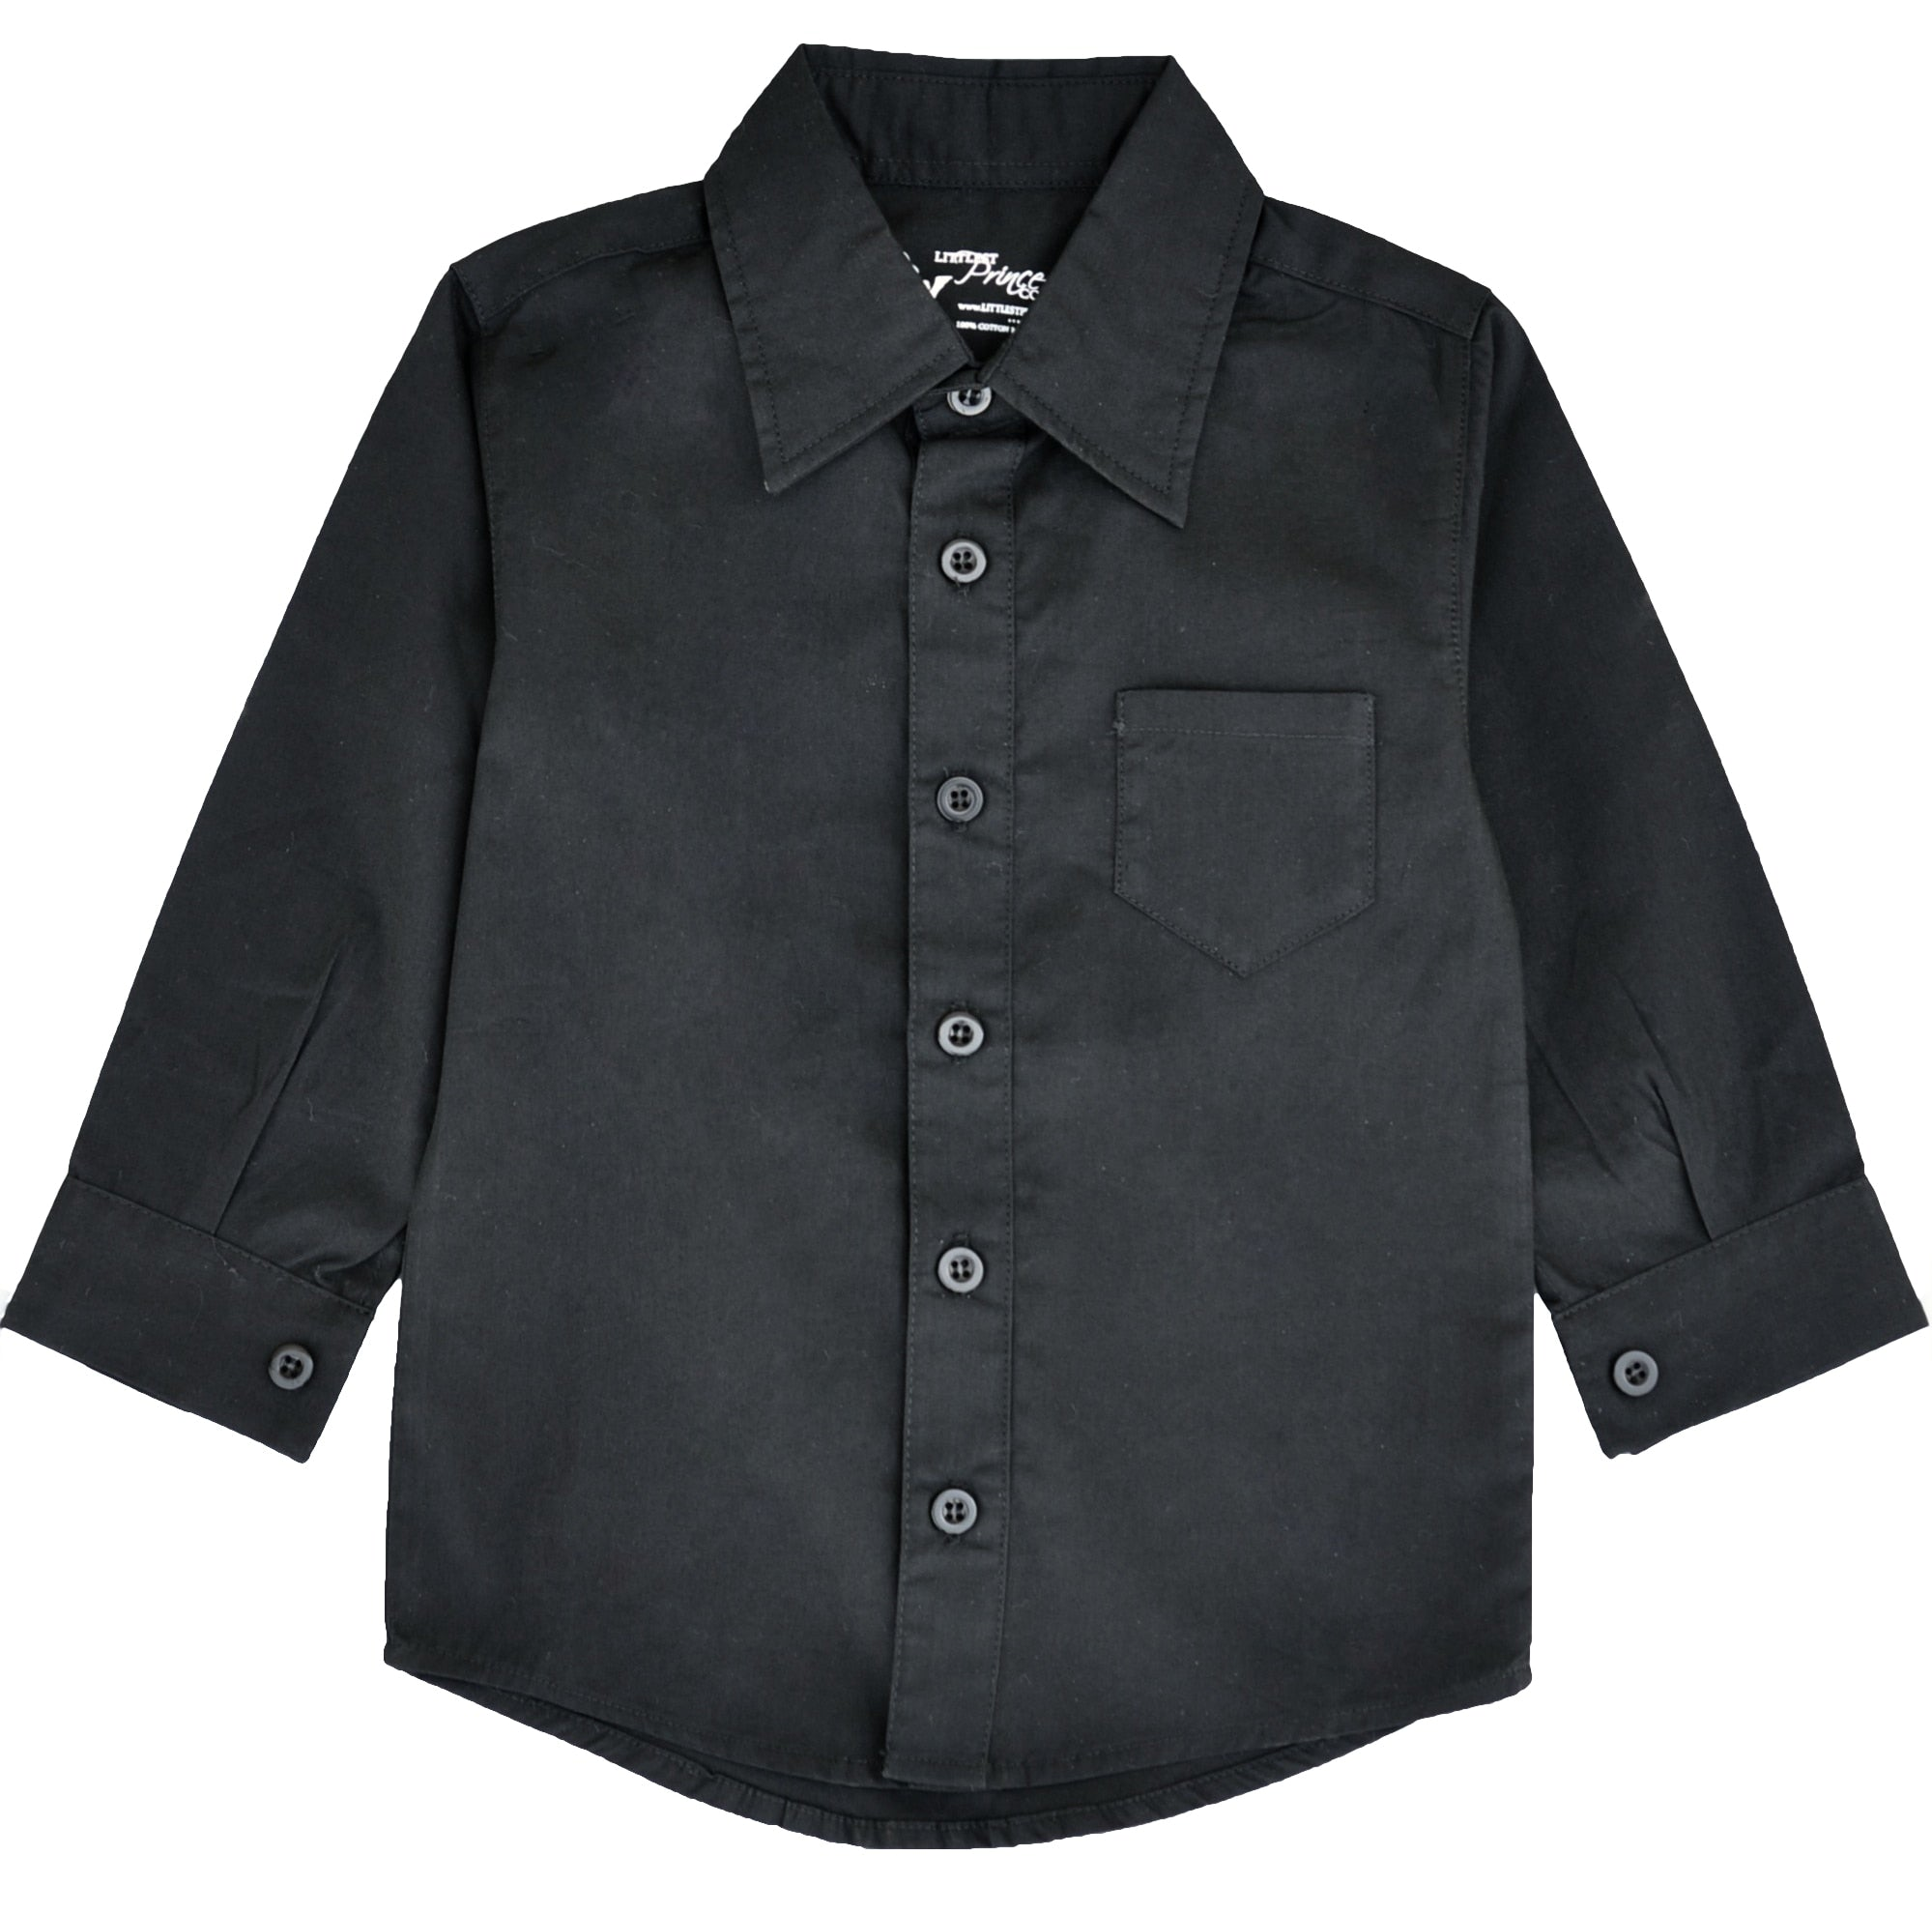 black-dress-shirt.jpg